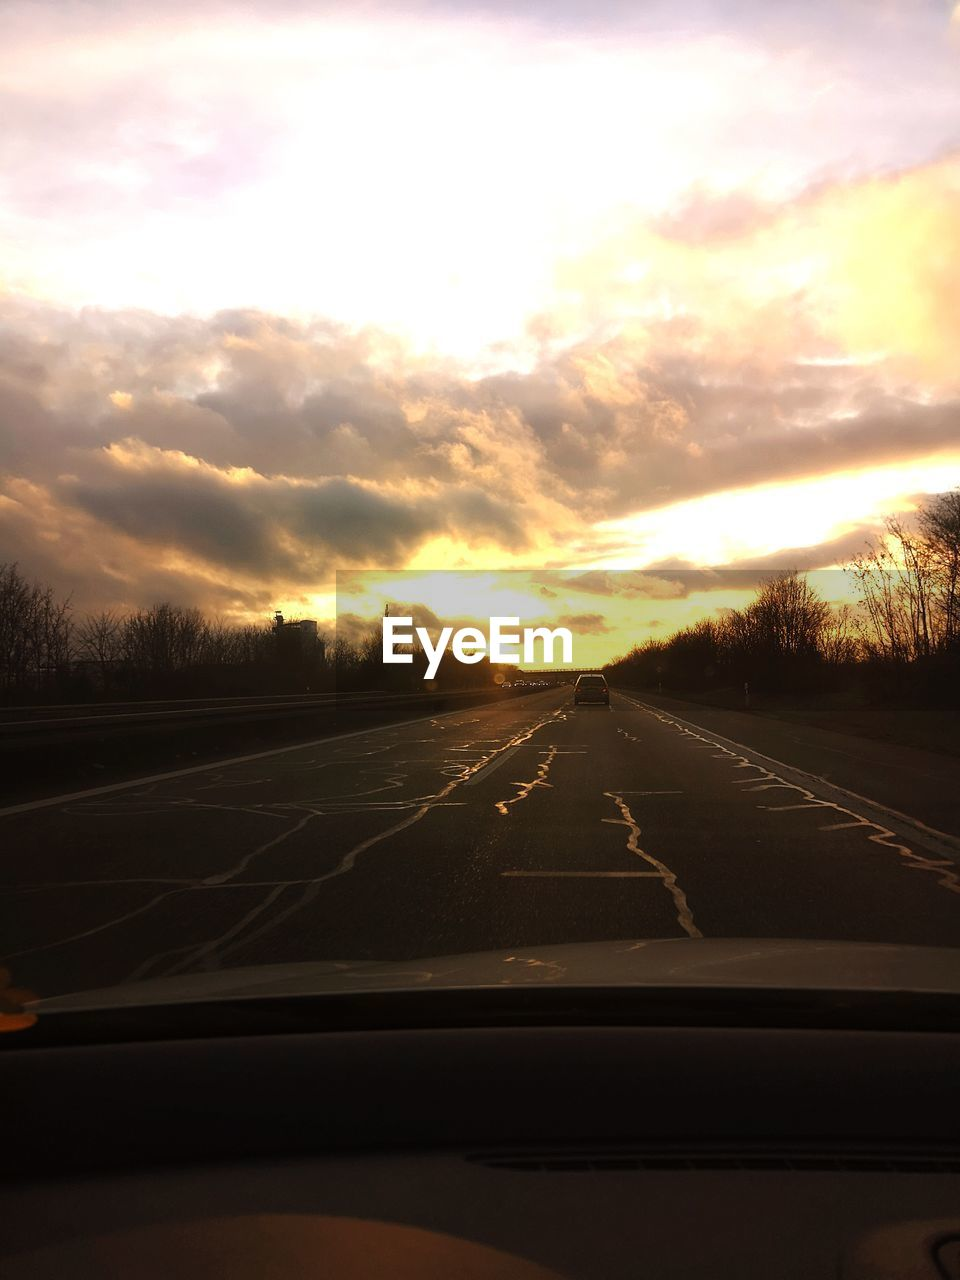 transportation, car, road, mode of transportation, vehicle interior, motor vehicle, sky, sunset, cloud - sky, land vehicle, transparent, car interior, windshield, no people, glass - material, nature, travel, car point of view, scenics - nature, direction, diminishing perspective, outdoors